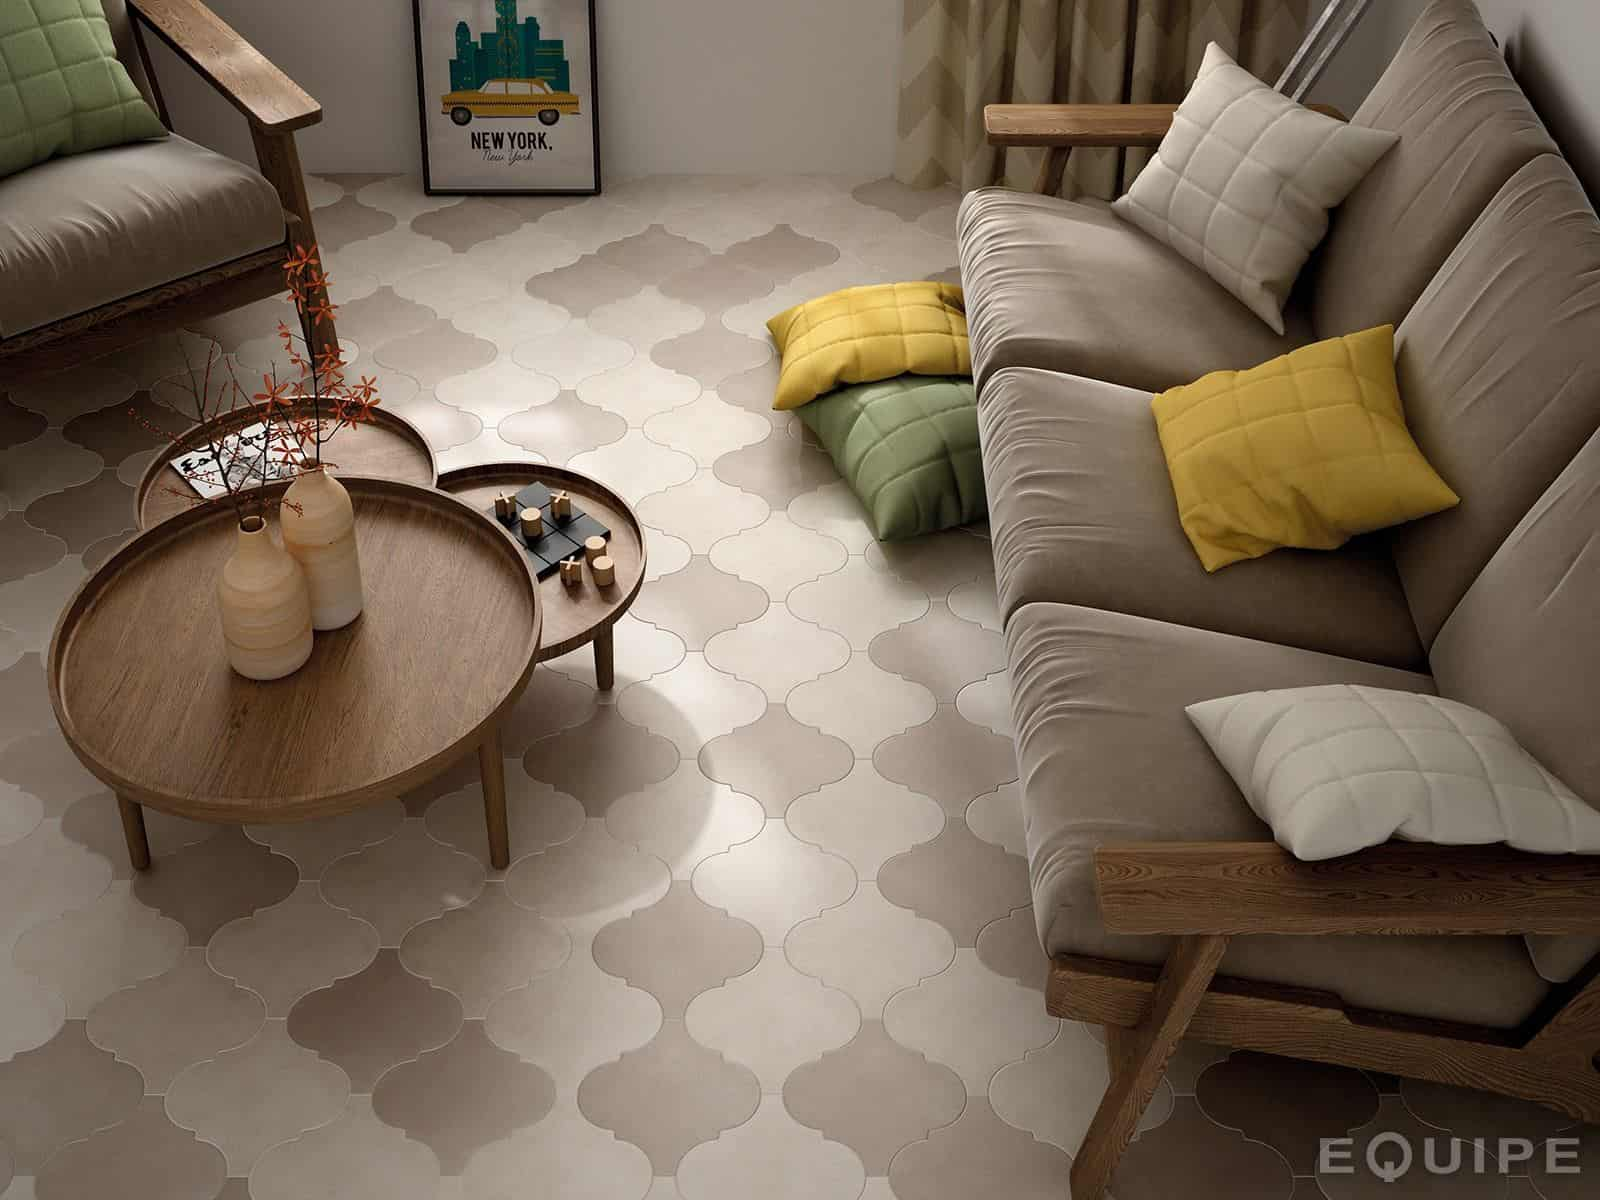 21 arabesque tile ideas for floor wall and backsplash view in gallery arabesque tile simple pattern living room floor equipe dailygadgetfo Choice Image